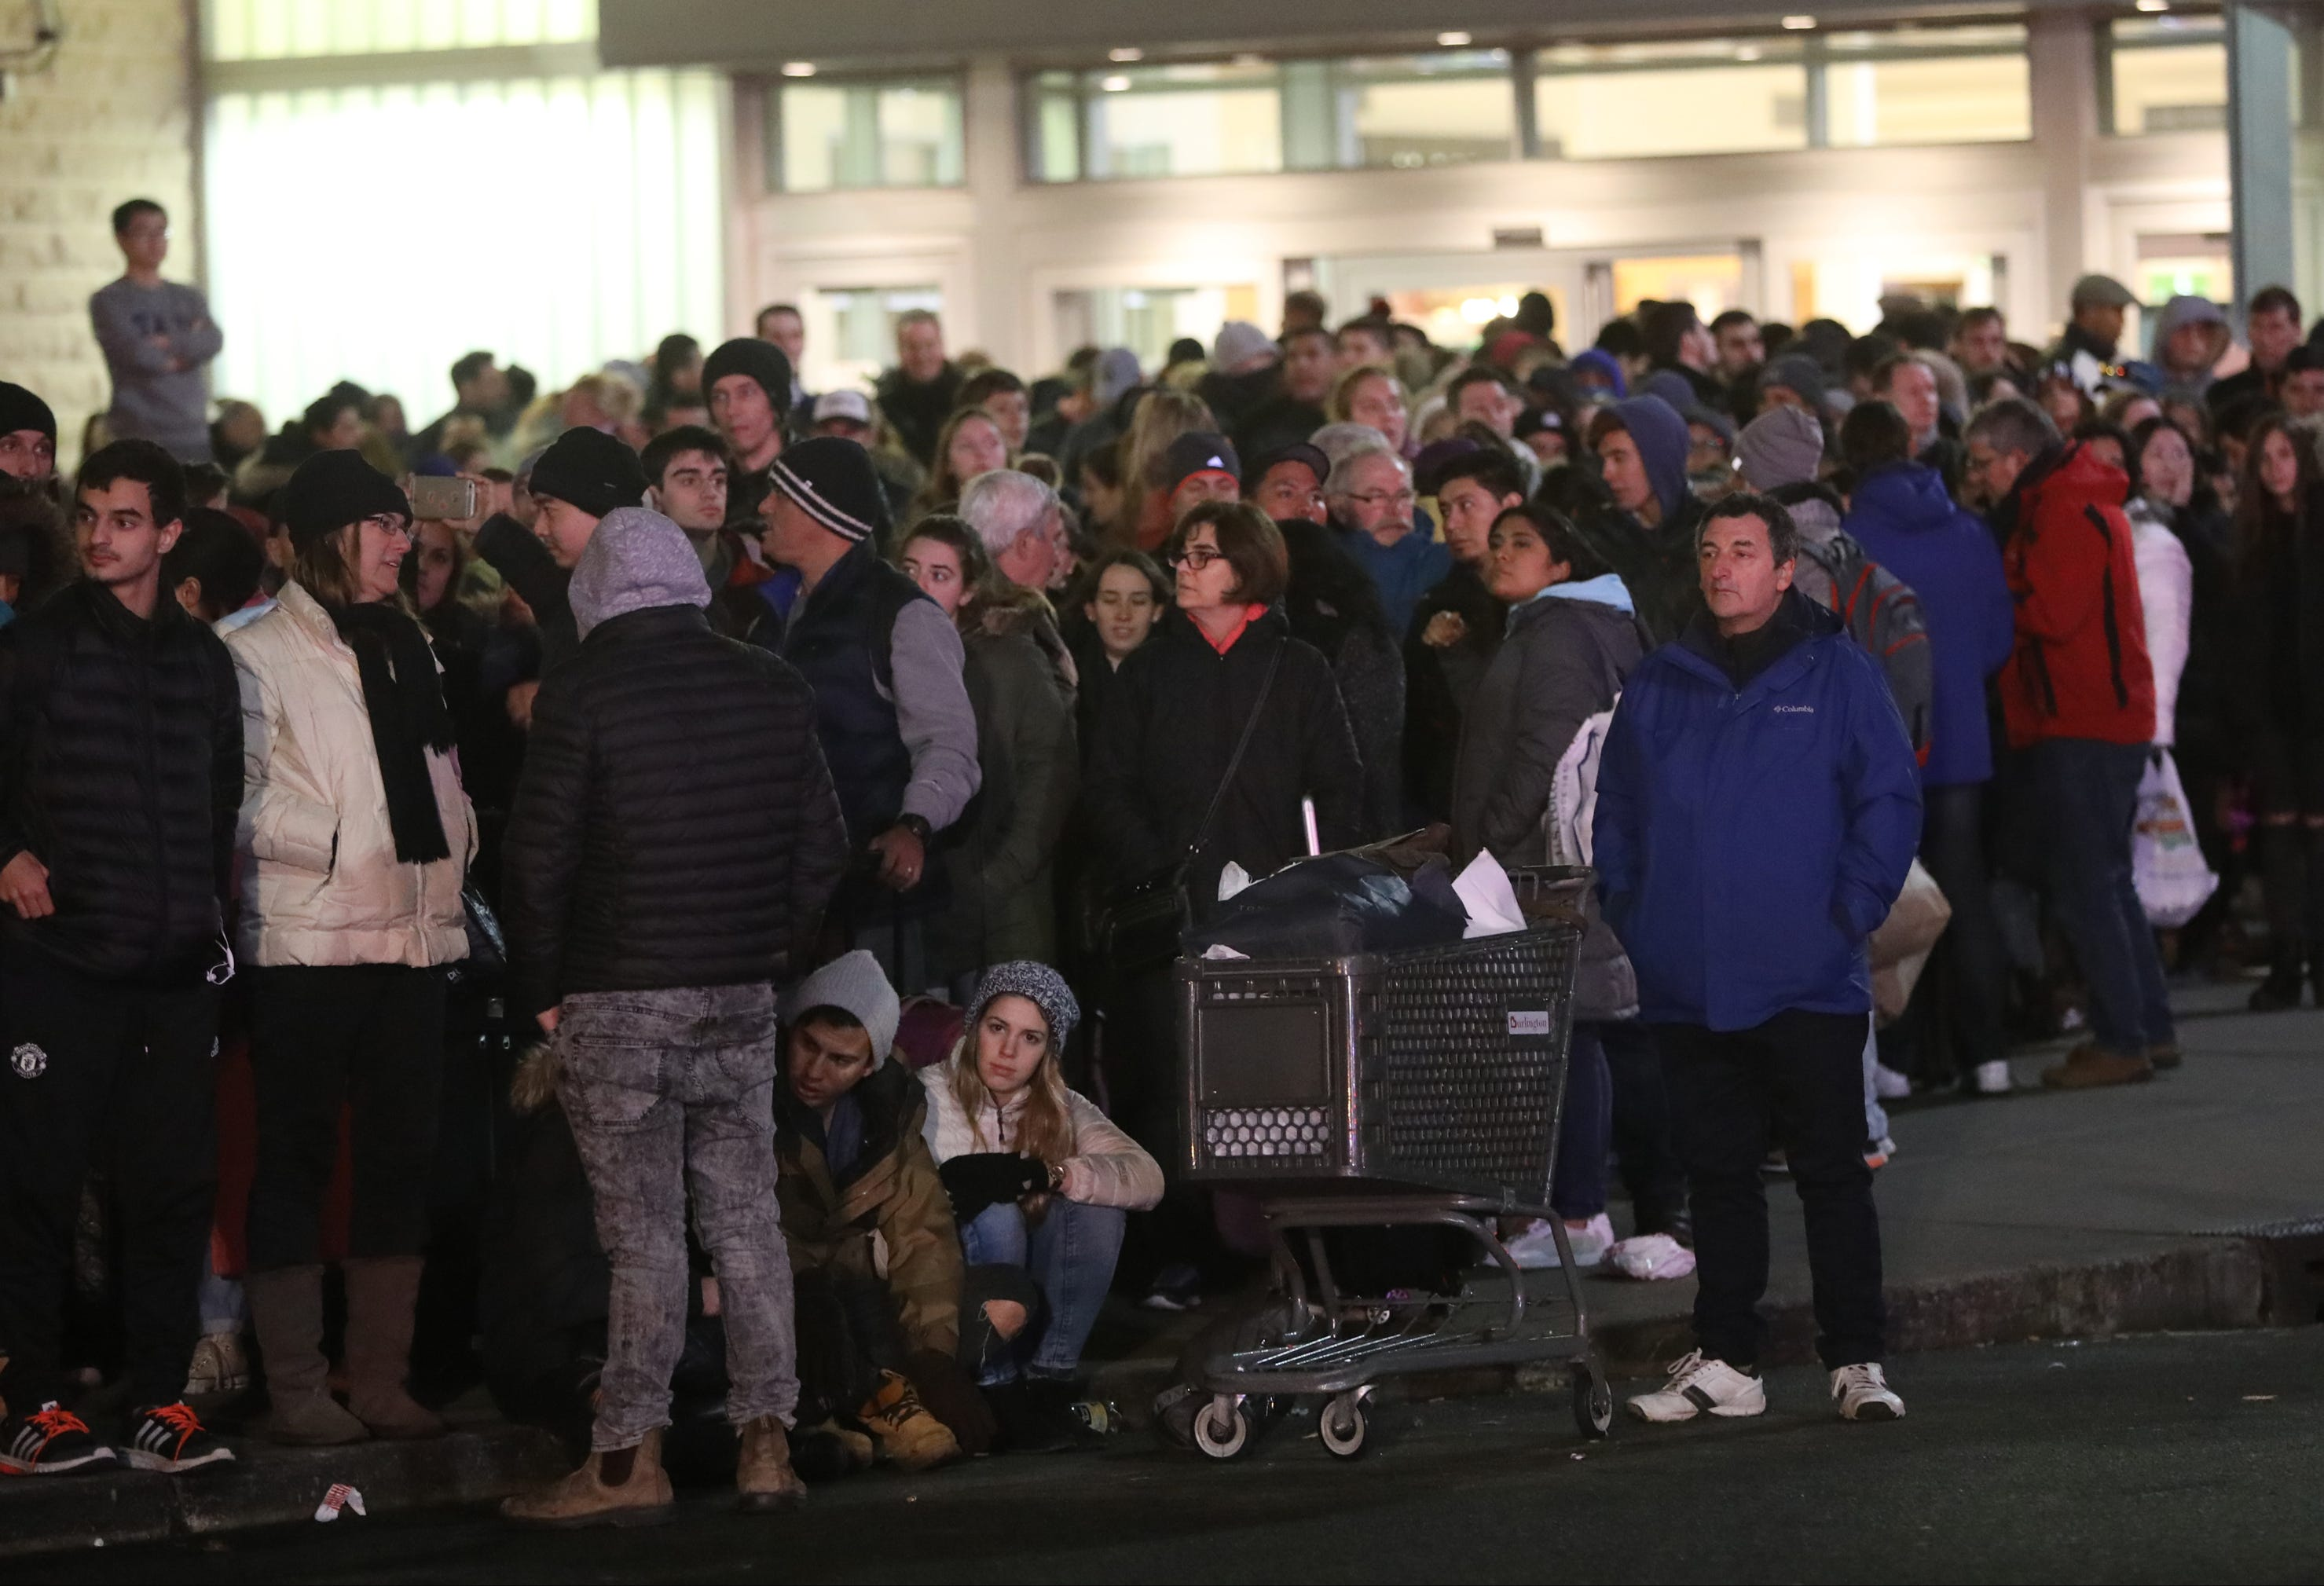 More Than A Thousand People Were Estimated To Be On Line For NJ Transit  Buses After The Jersey Gardens Mall In Elizabeth Was Evacuated On One Of  The Busiest ...